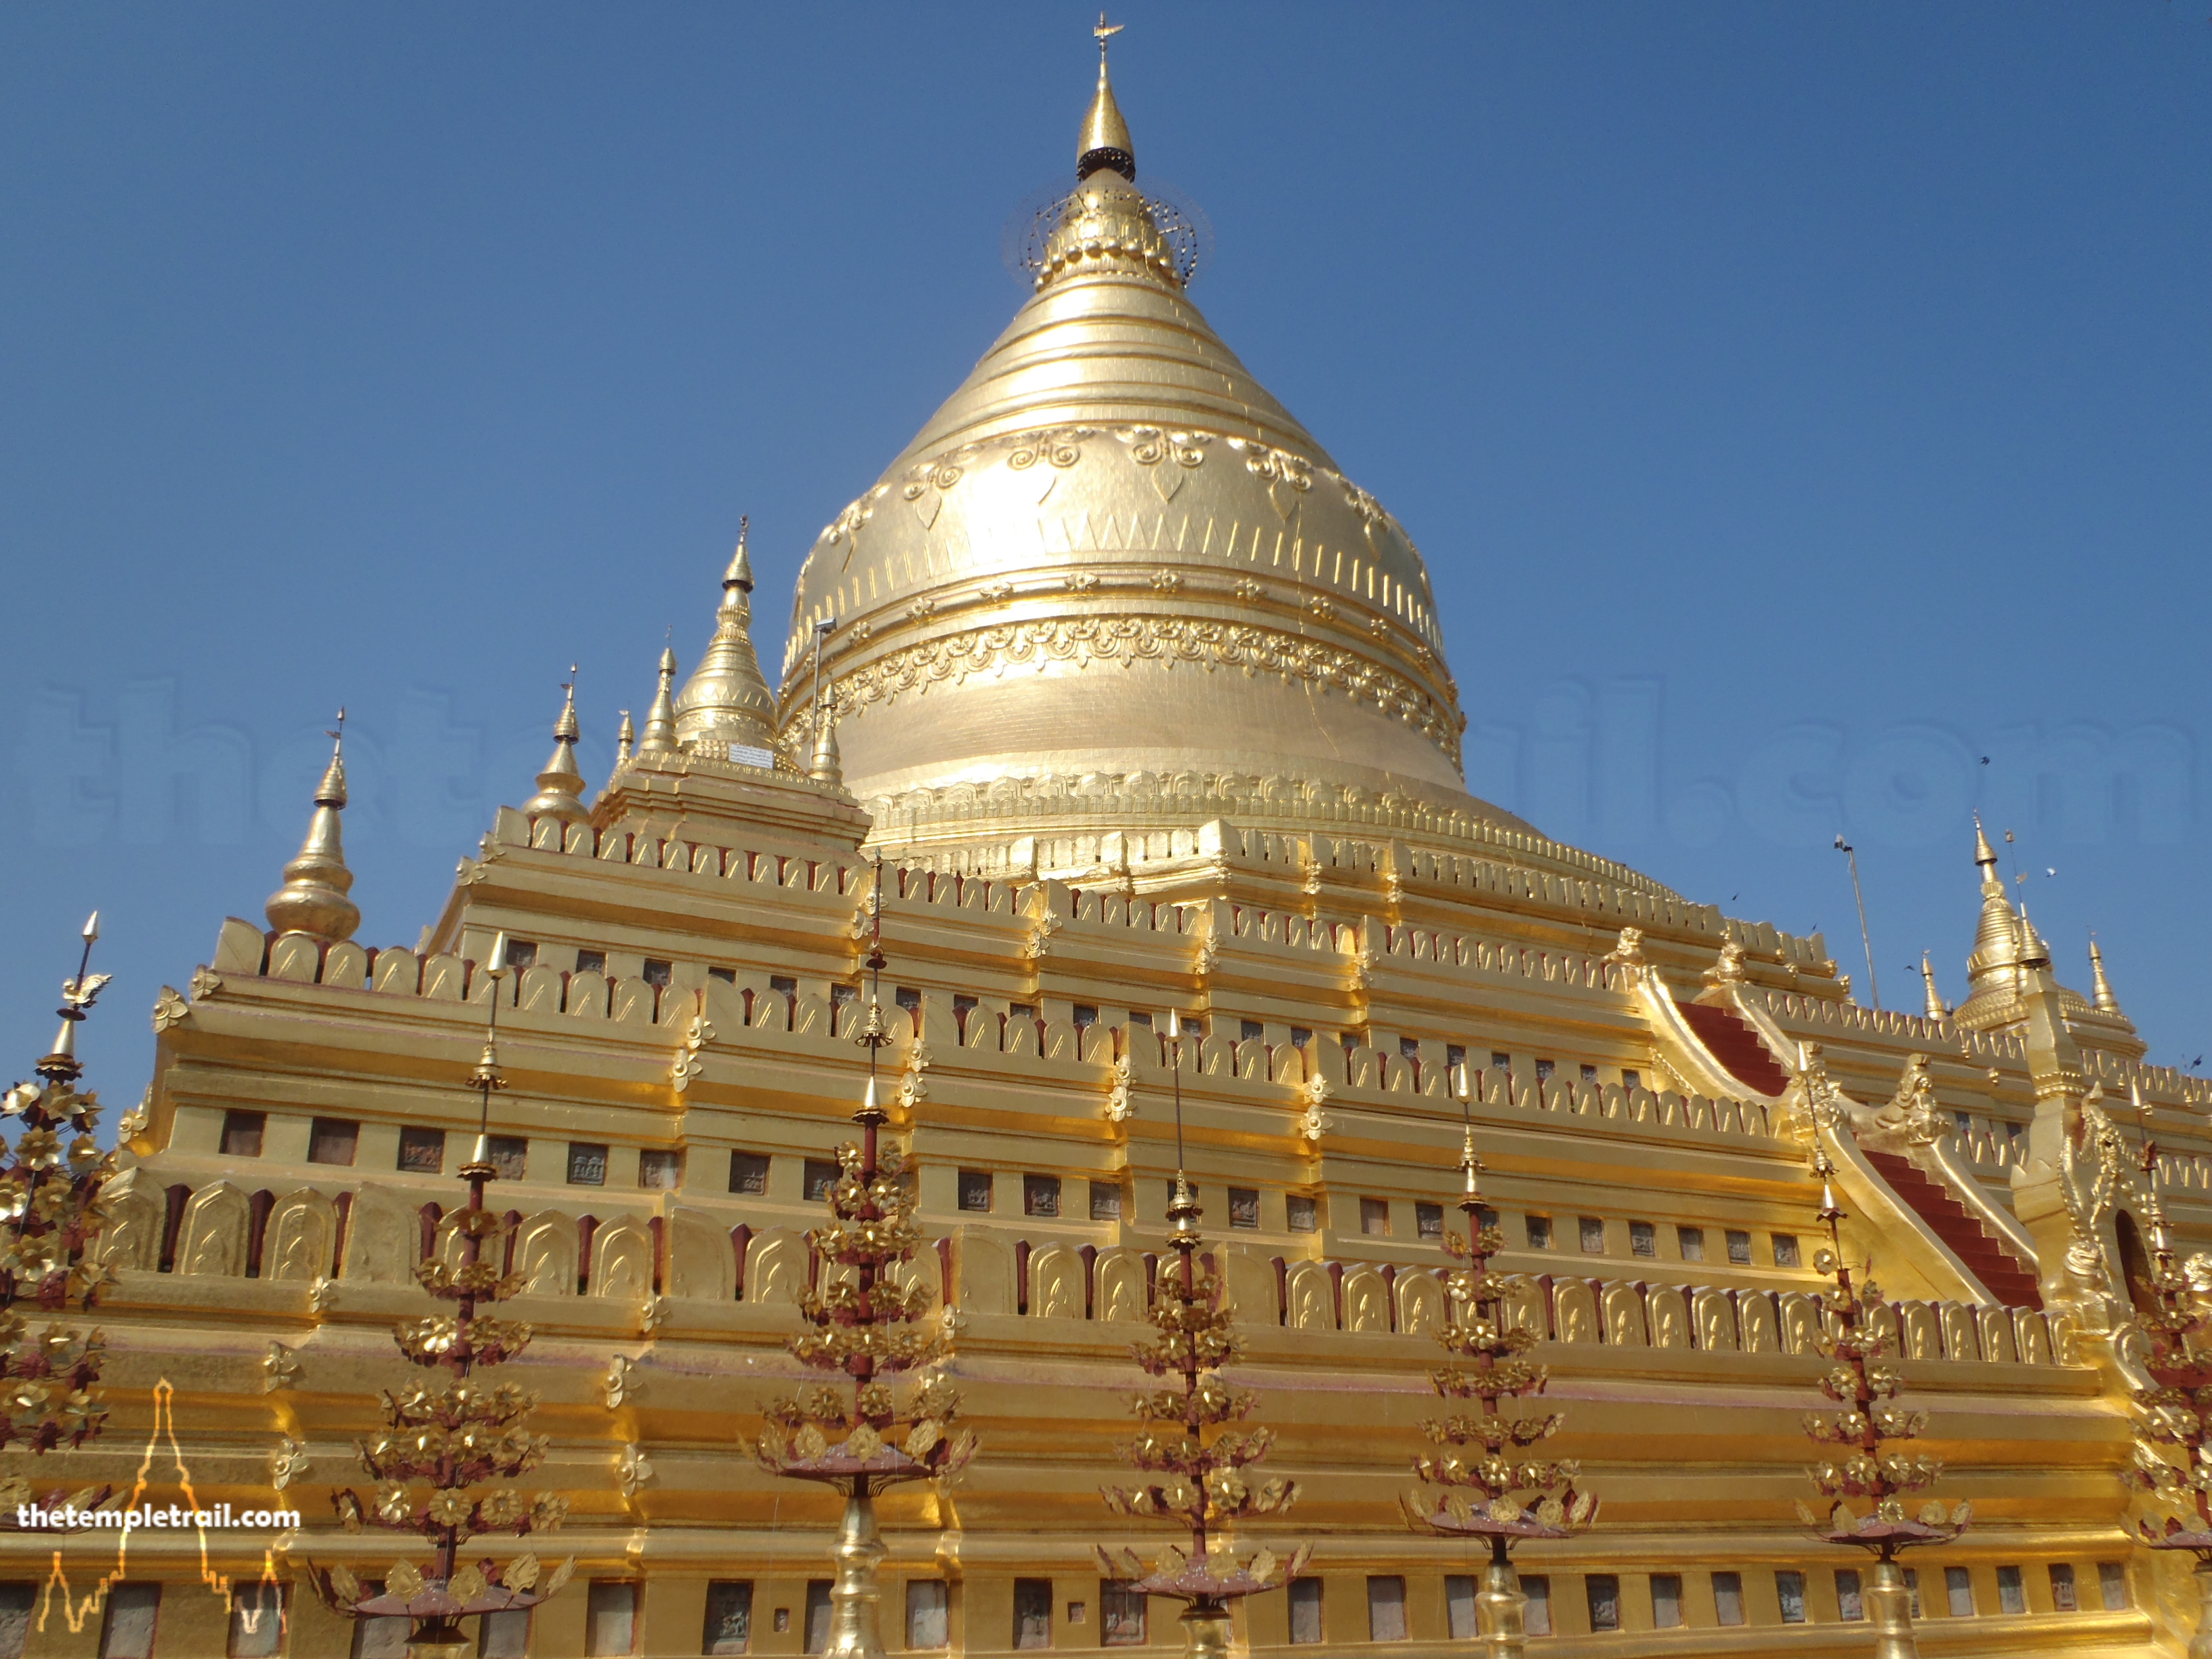 the stupas of myanmar thailand and laos architecture of